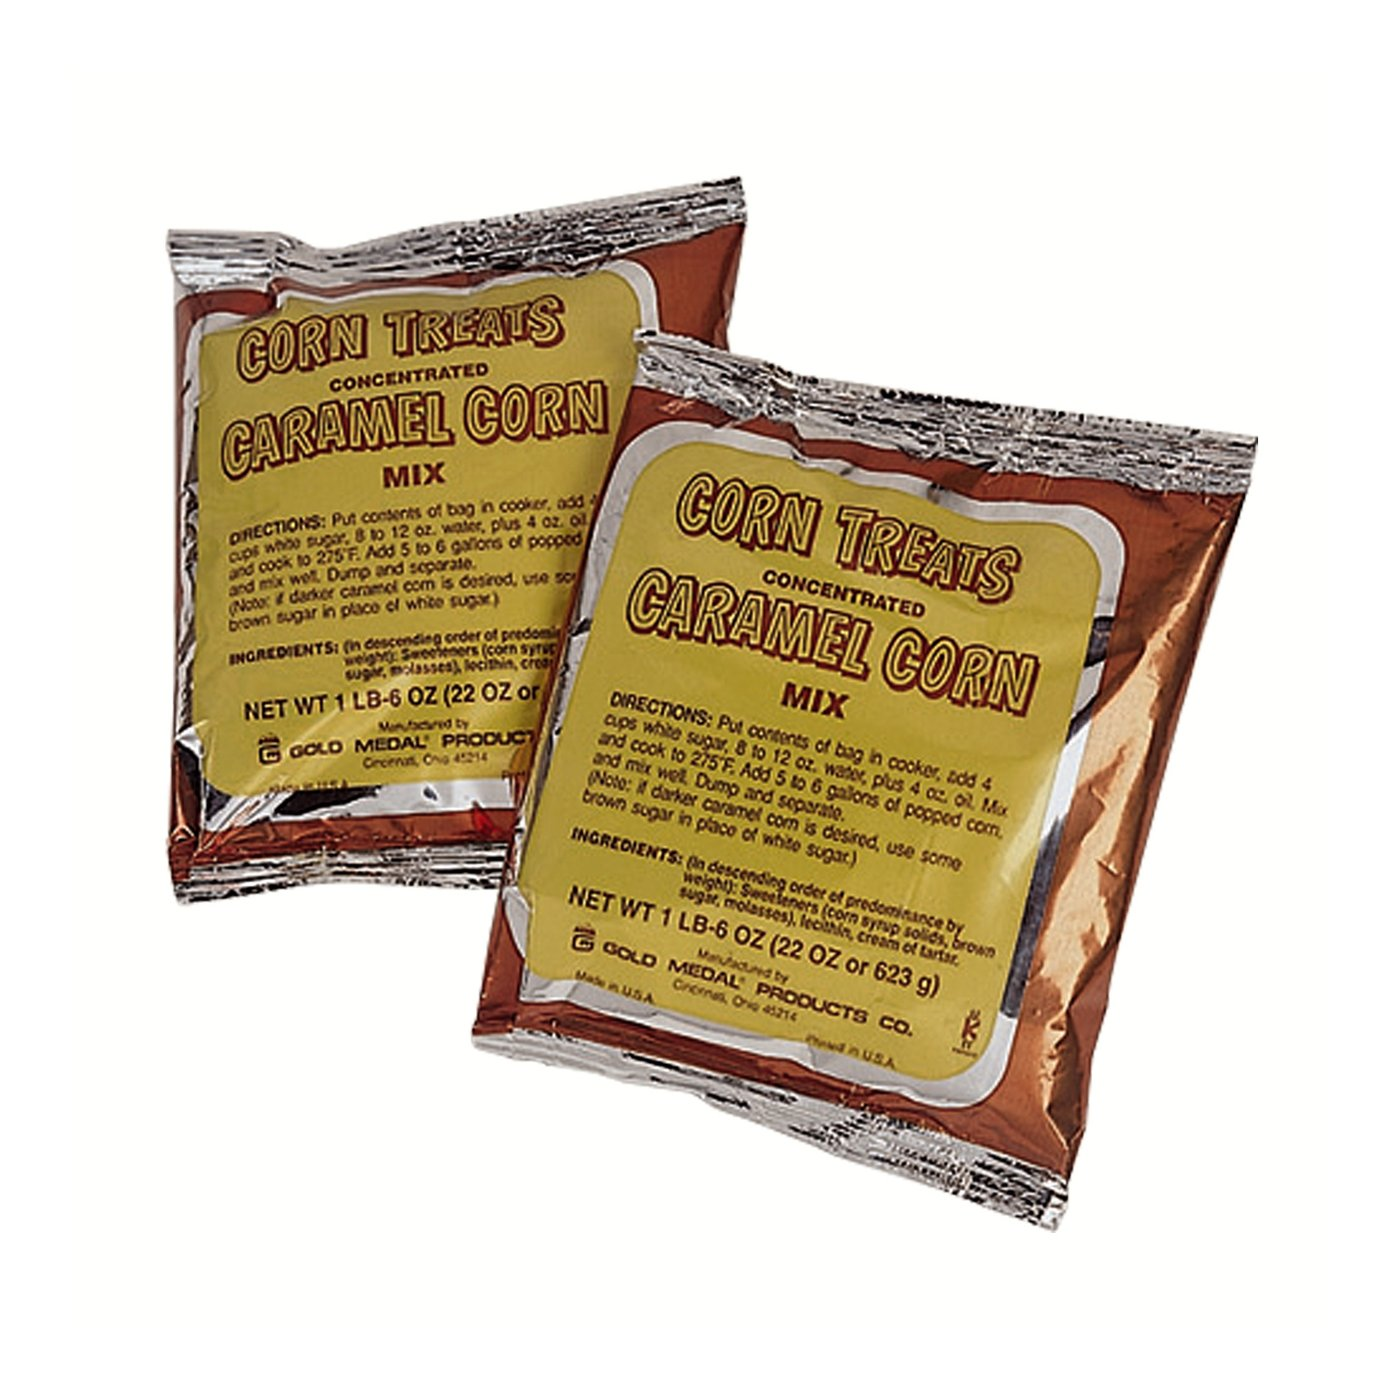 Chocolate Corn Treat Concentrate Mix (Bulk)